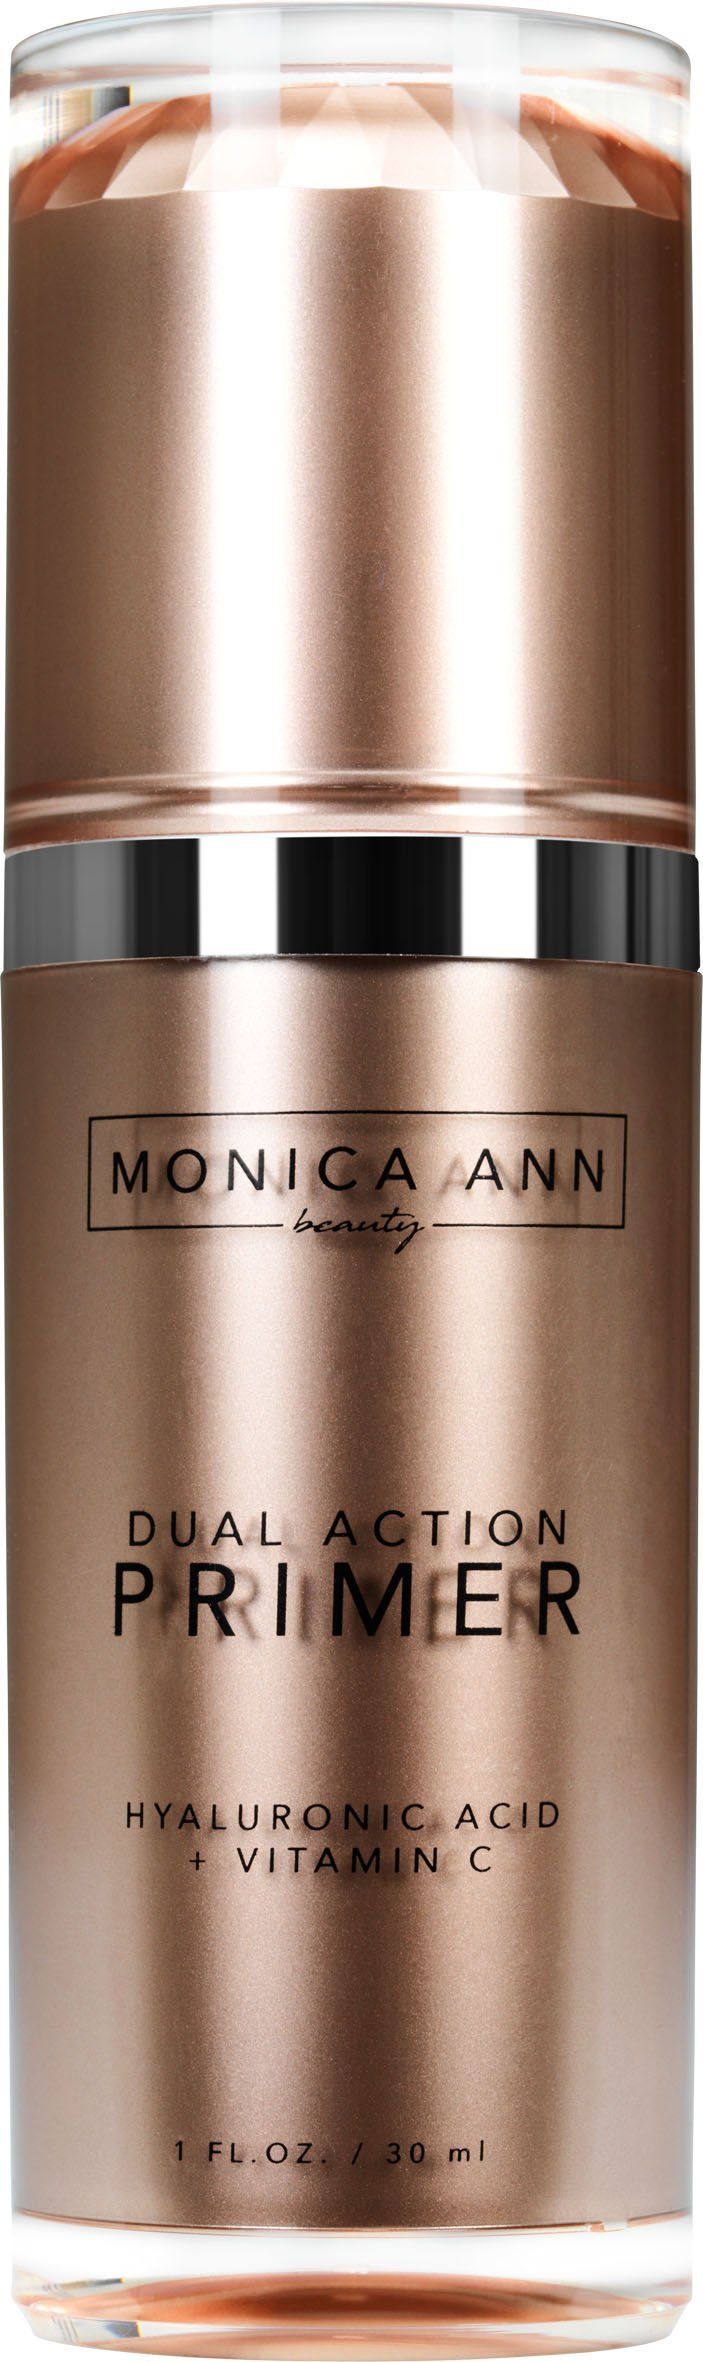 Dual-Action Face Primer (Vitamin C+ Hyaluronic Acid) , Monica Ann Beauty; Foundation Primer that will Hydrate, Mattify, Brighten, and Minimize Pores for a Healthy Natural Glow! by Monica Ann Beauty